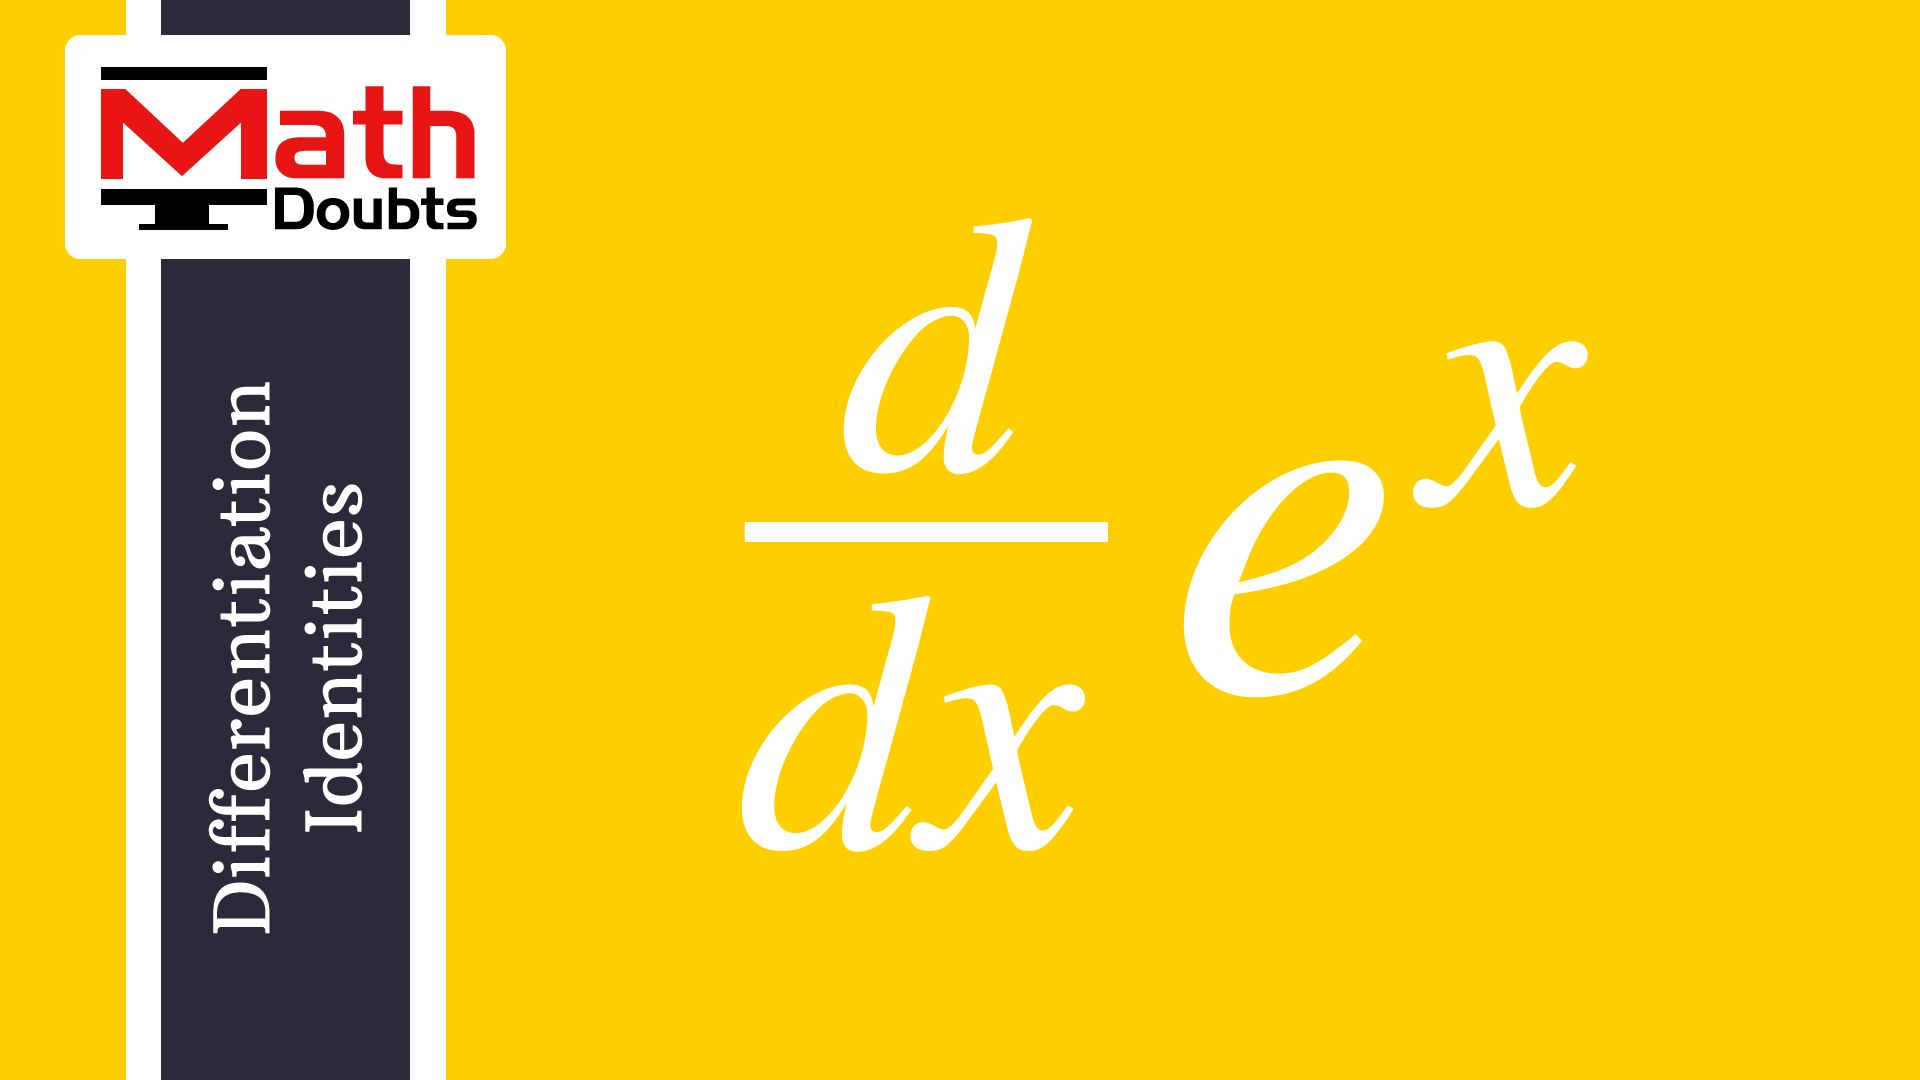 Derivative of e^x with respect to x